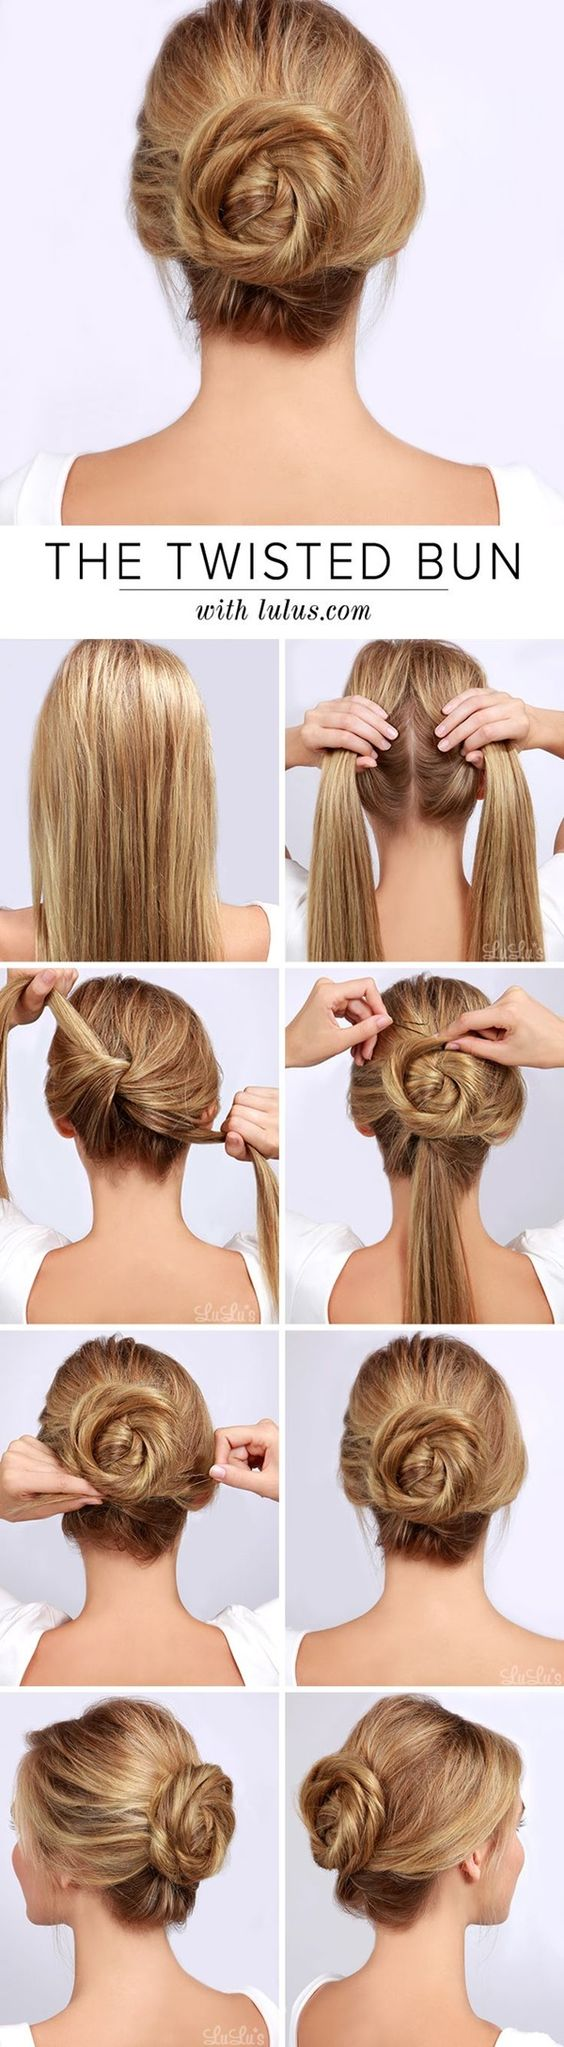 Tremendous 12 Easy Hairstyles For Any And All Lazy Girls Pretty Designs Short Hairstyles Gunalazisus